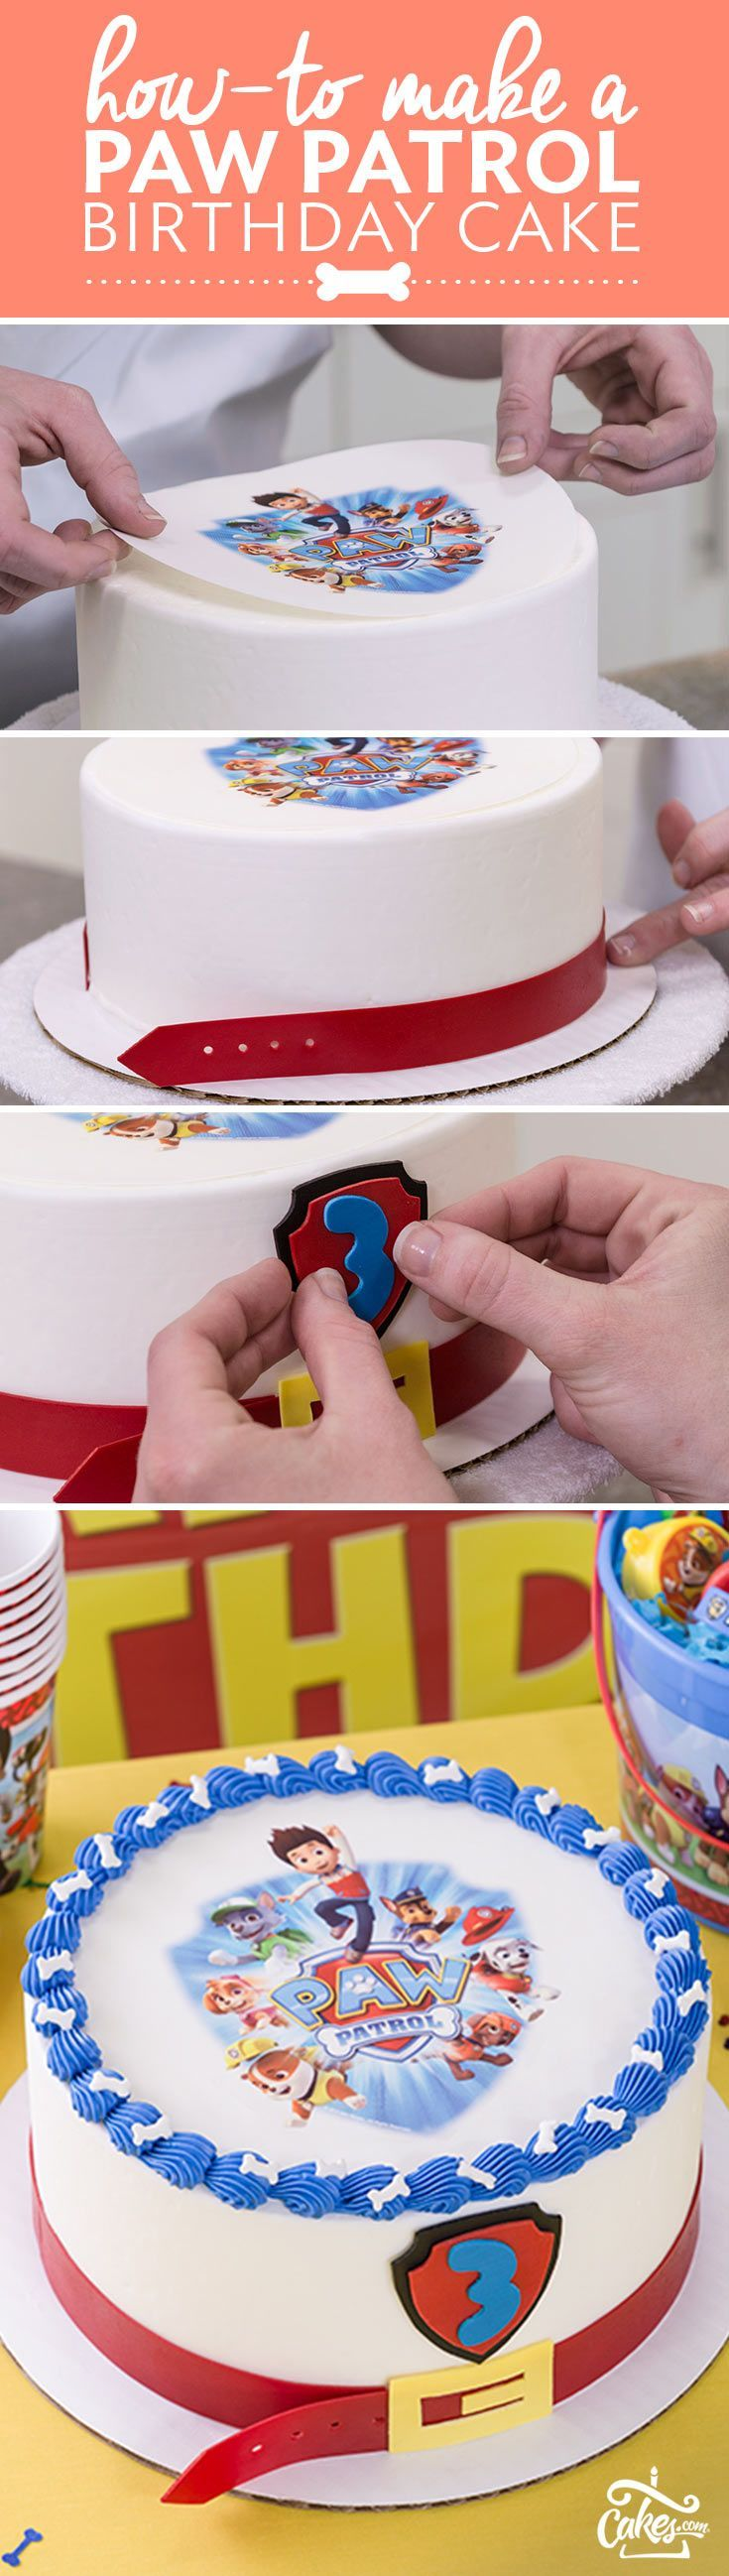 how to make the perfect sponge birthday cake